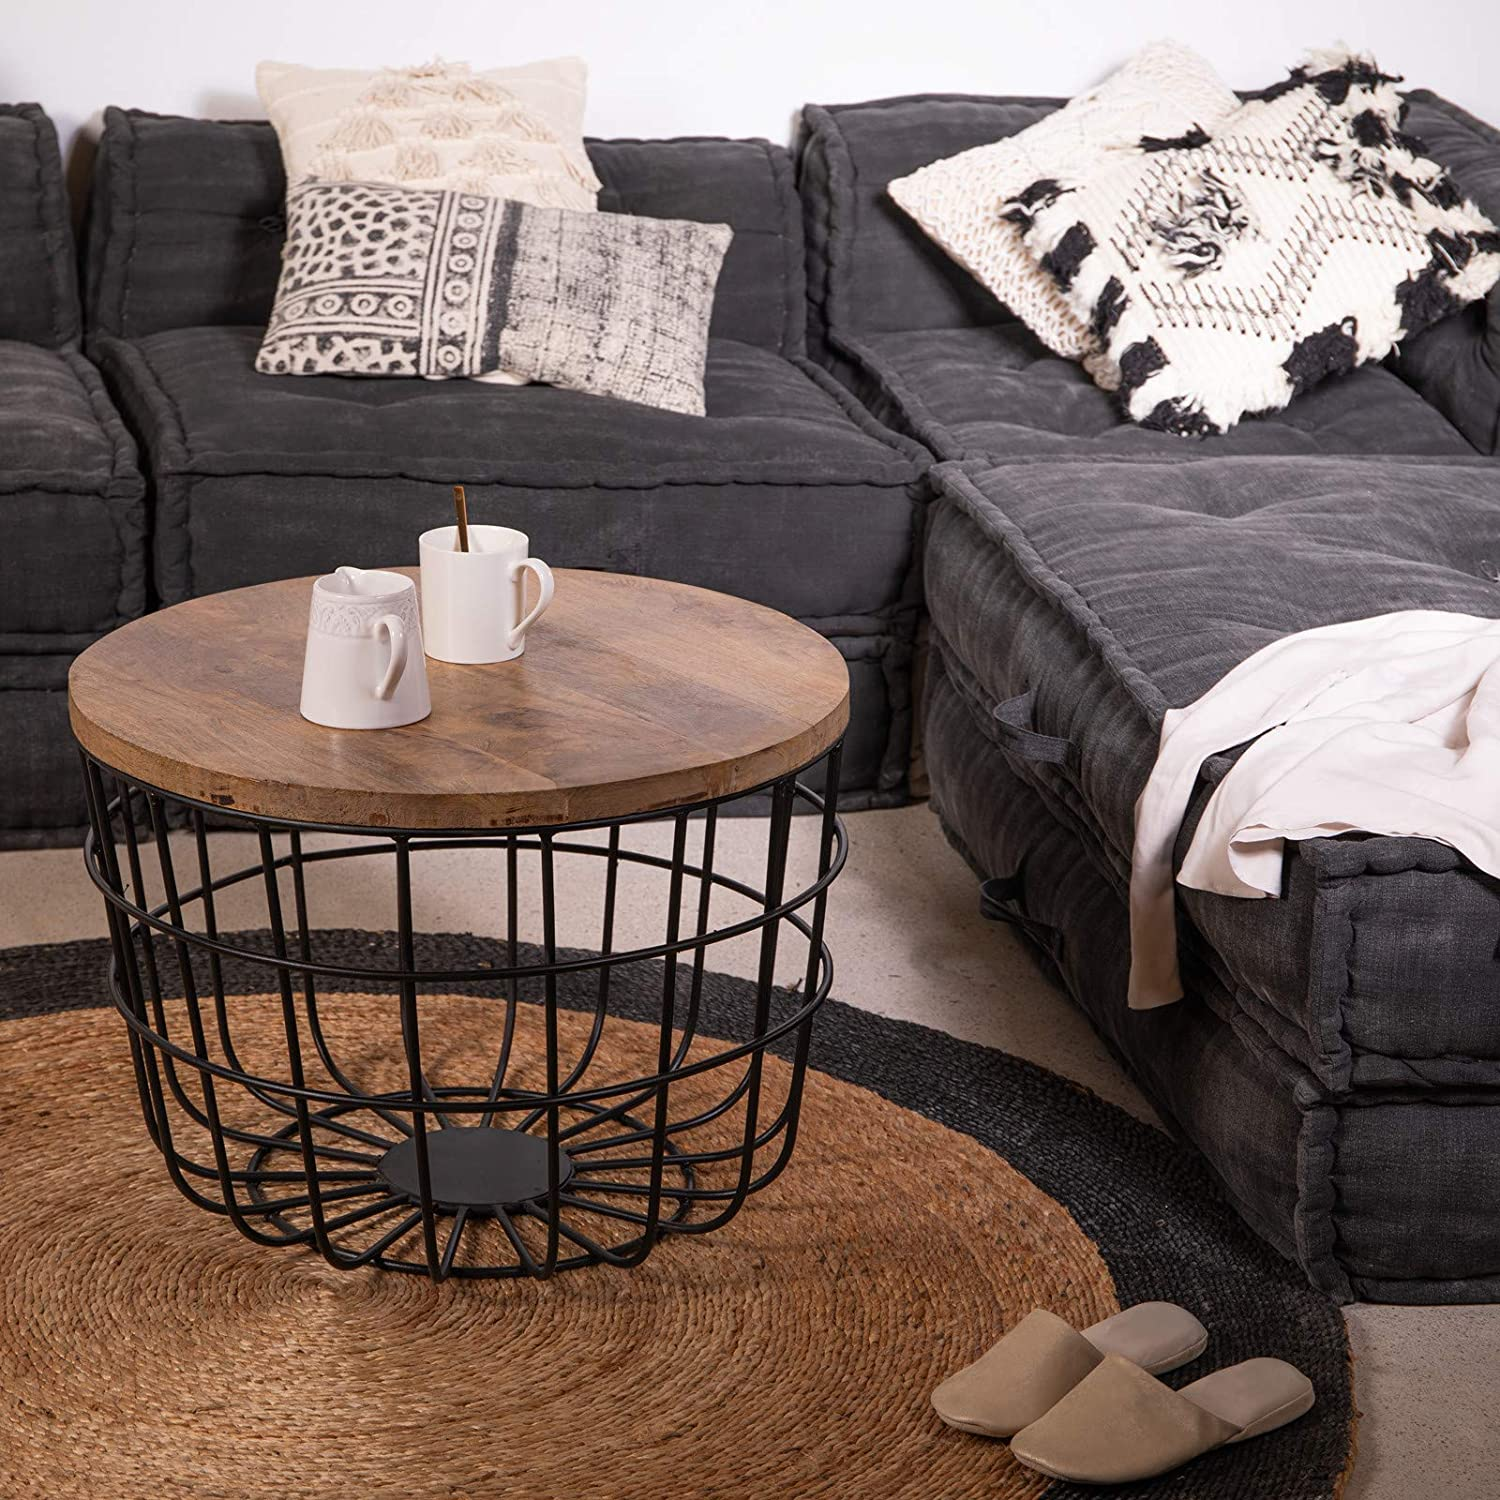 Migli Wooden Round Coffee Table for Living Room Tea Table for Living Room Central Table by Priti Size:-61x61x44 cm